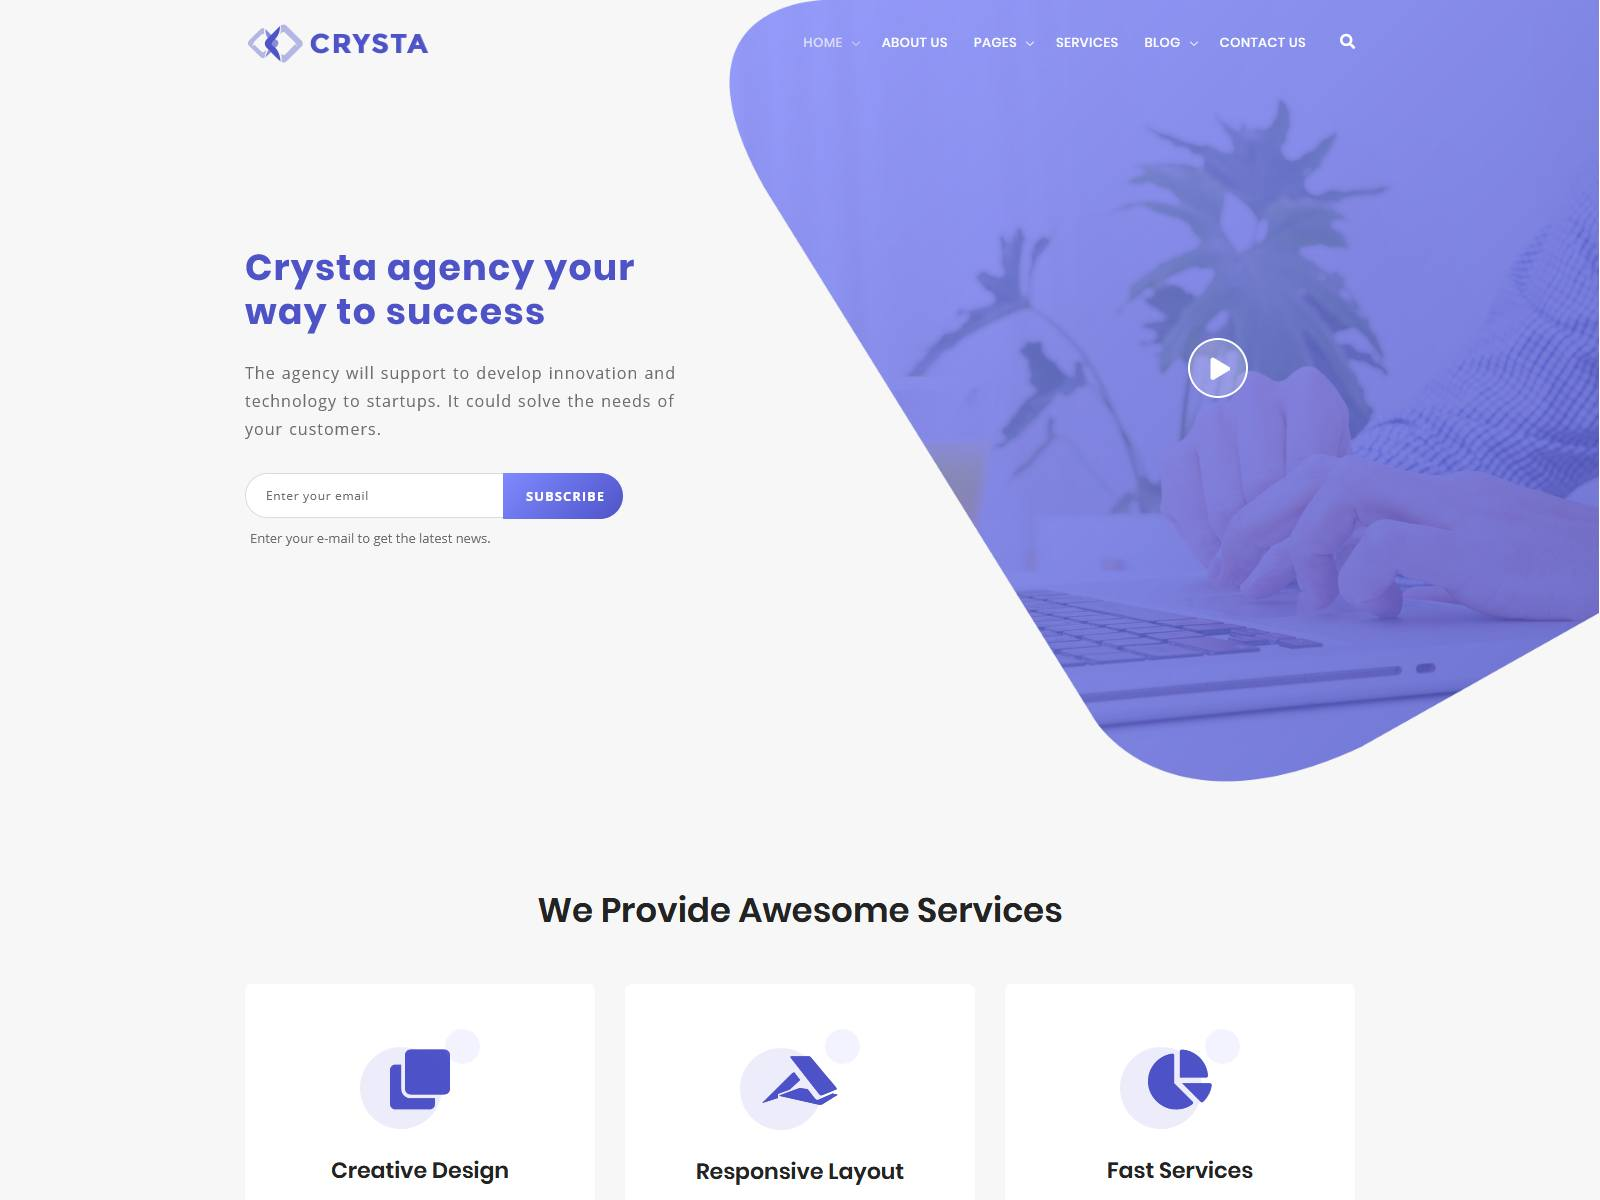 Crysta - Startup Agency and SasS Business WP Theme Startup WordPress Themes